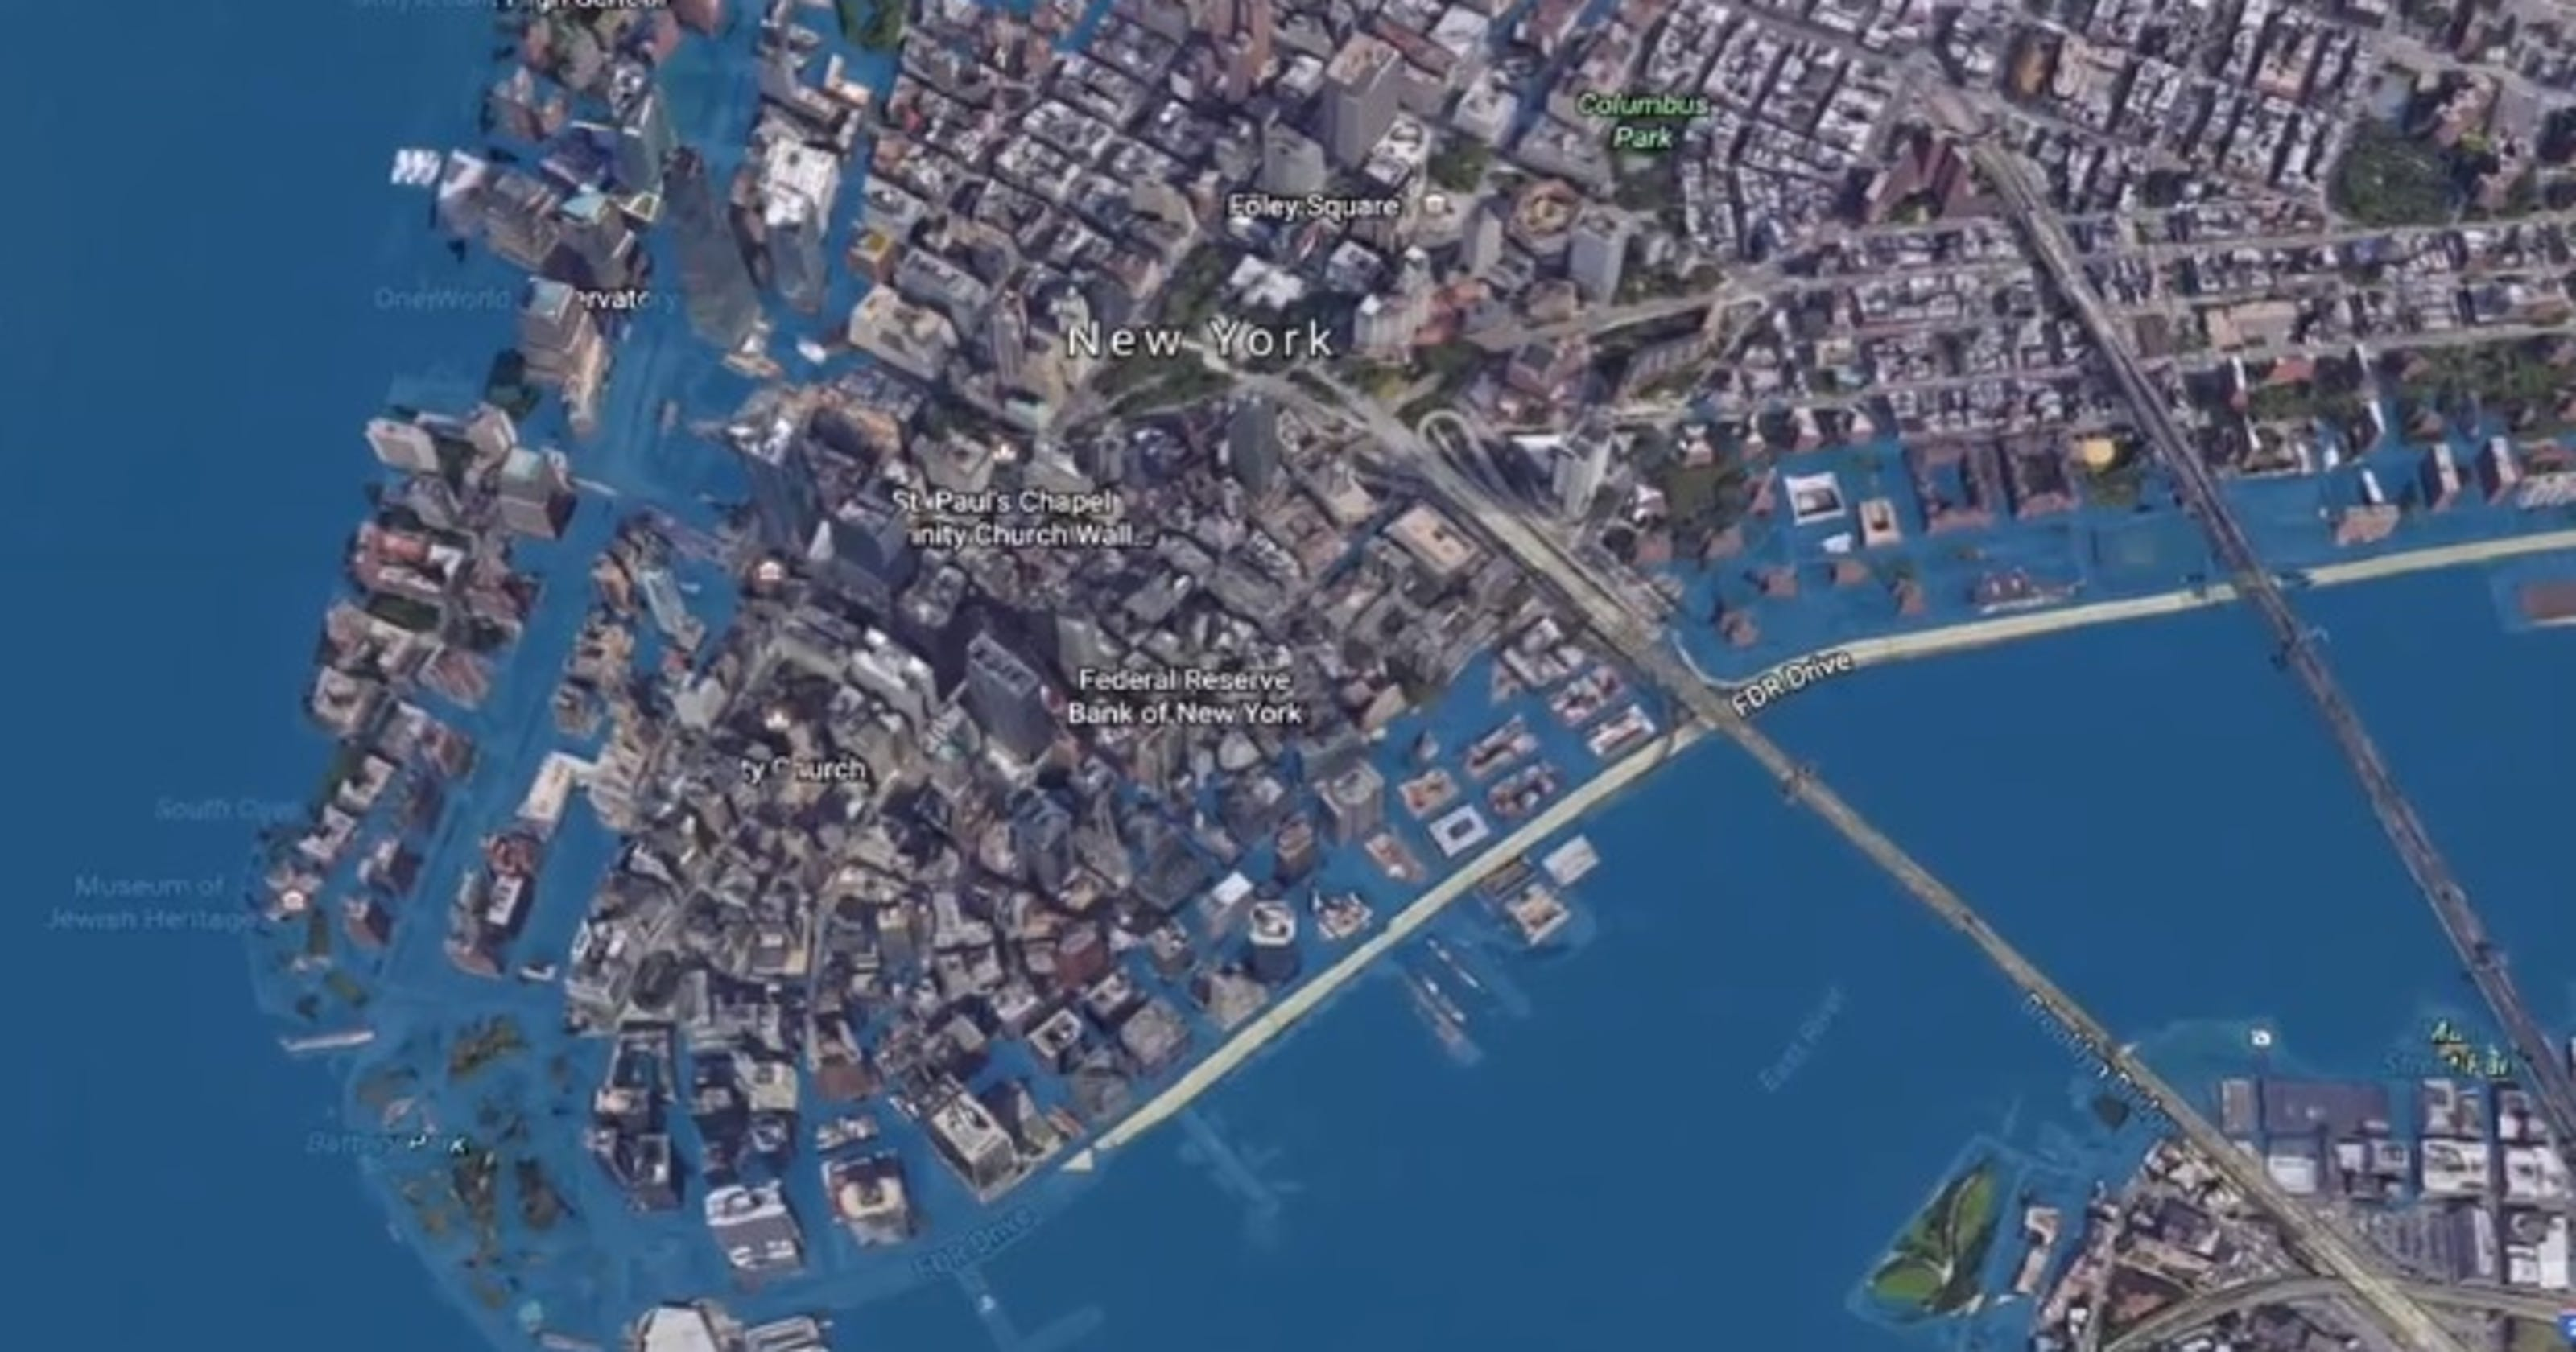 Sea level rise: Rising oceans could swamp coastal cities